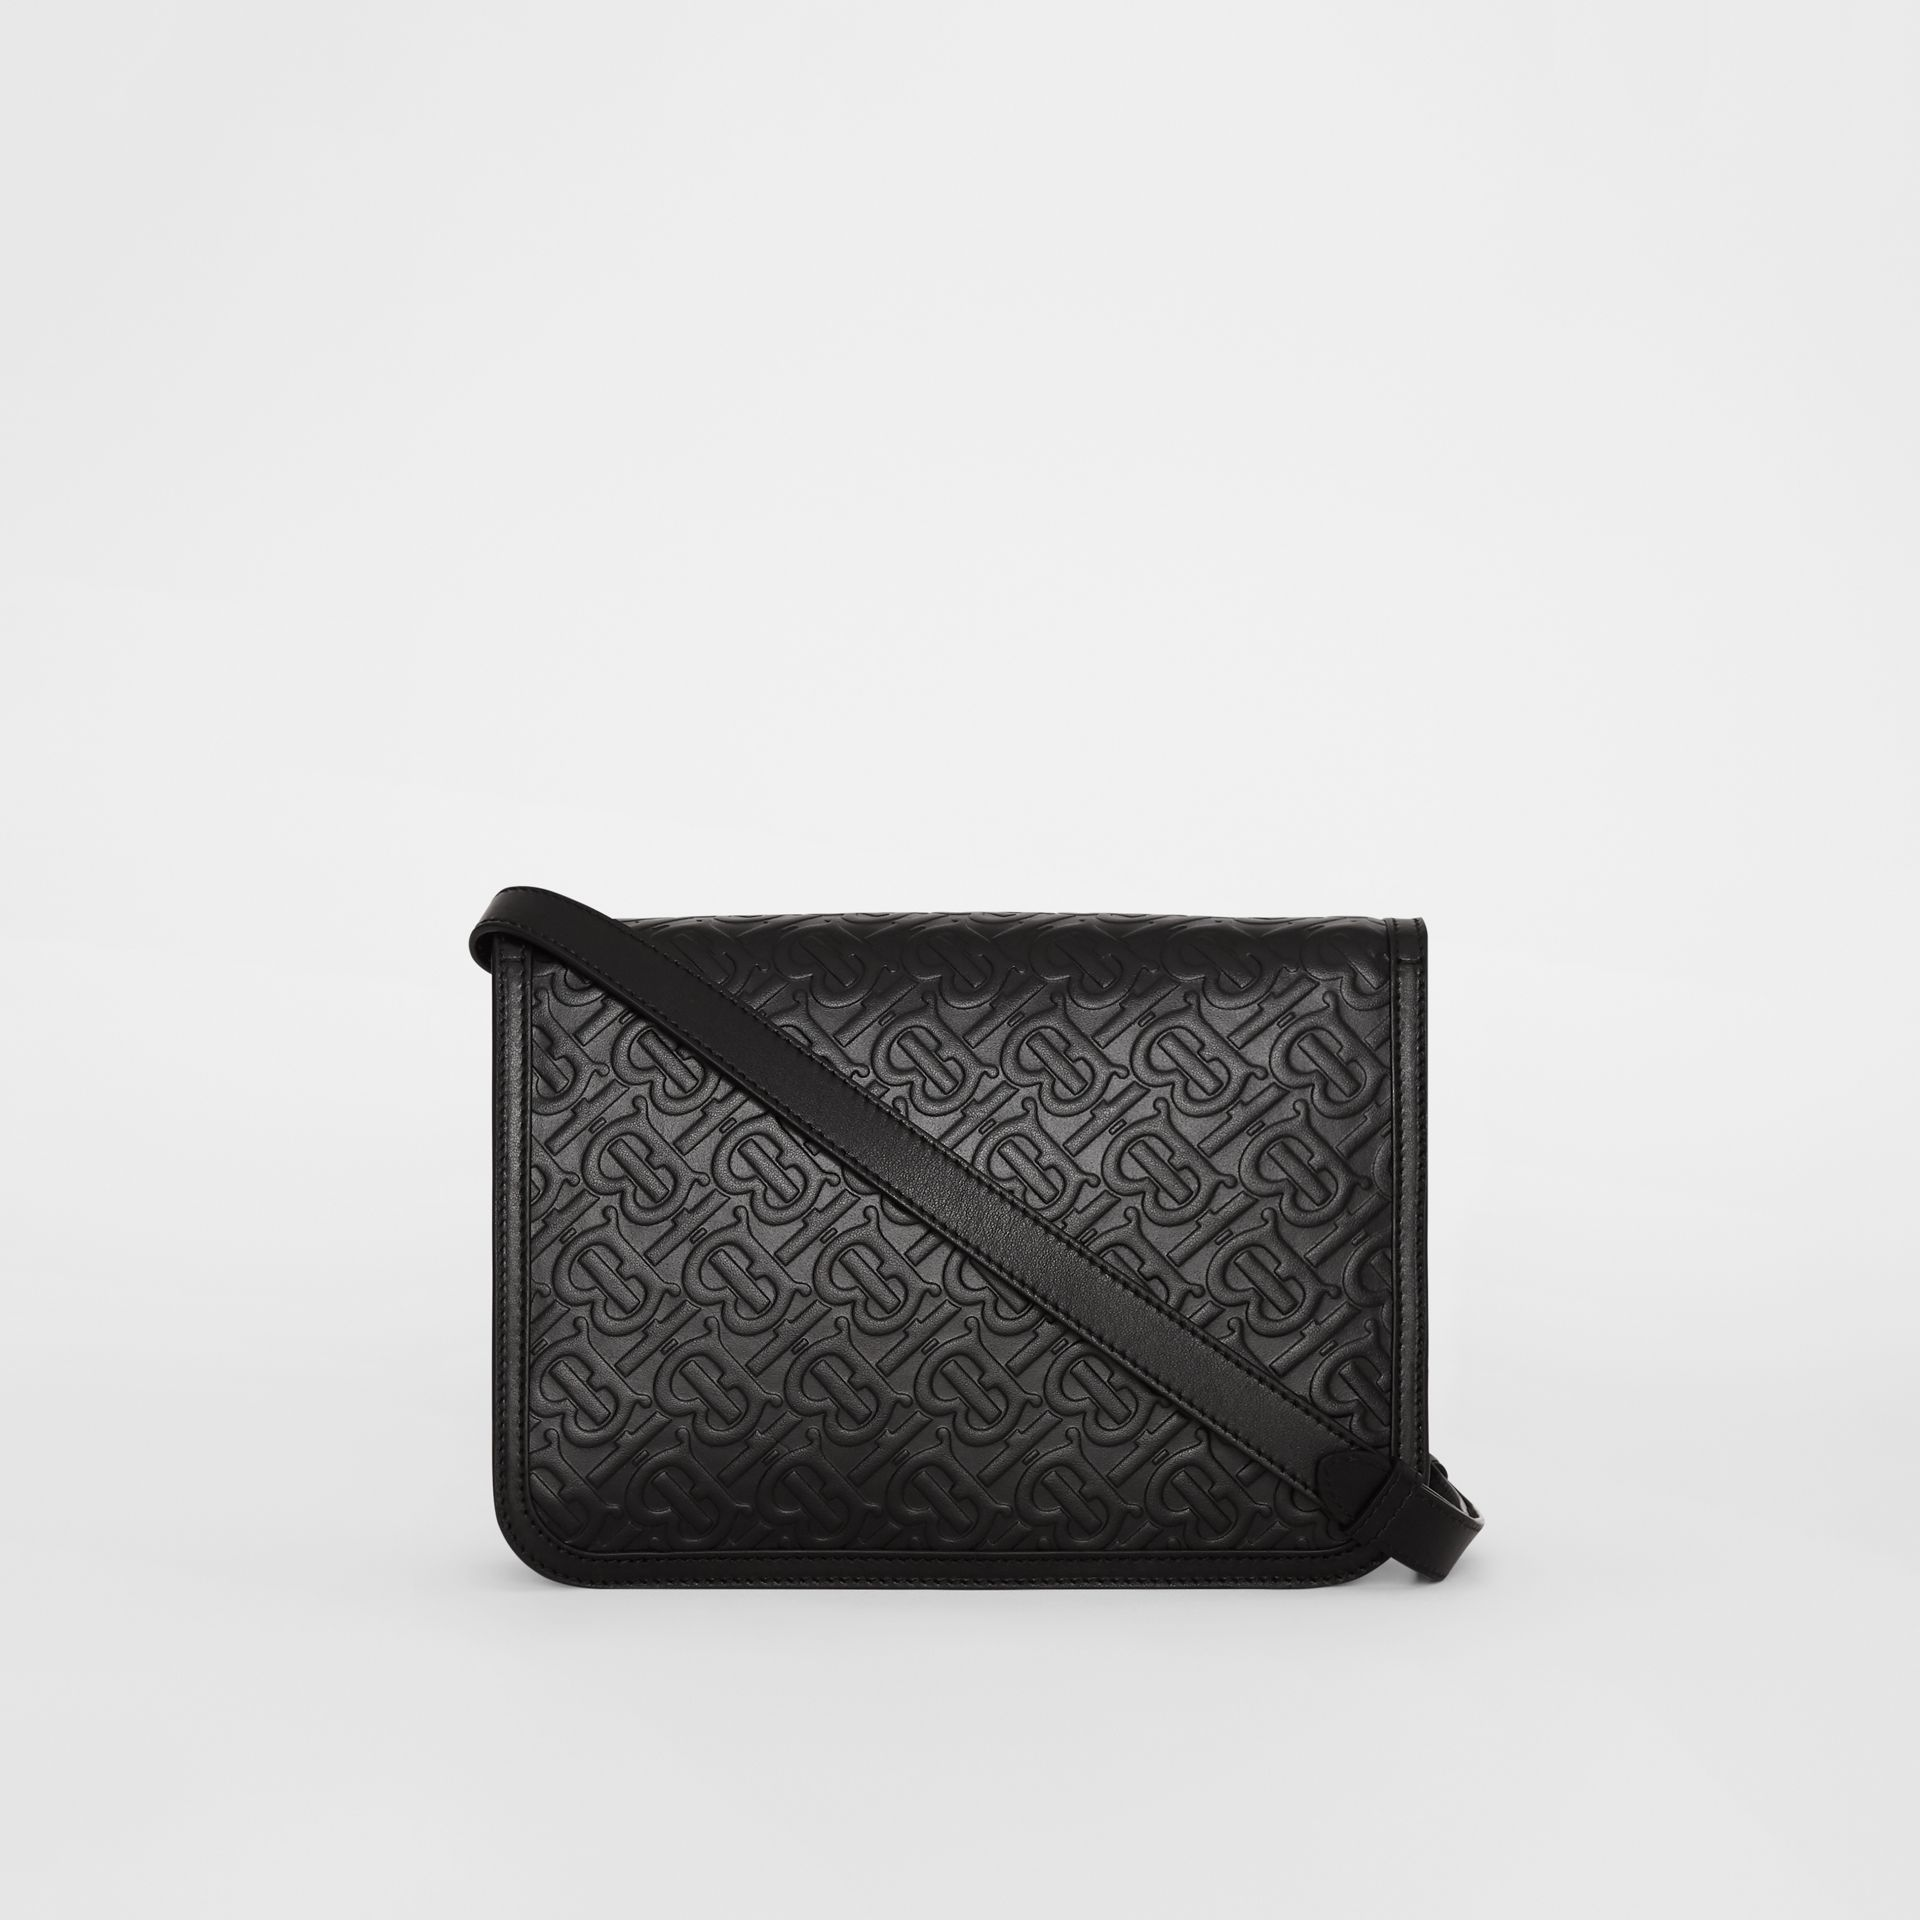 Medium Monogram Leather TB Bag in Black - Women | Burberry Canada - gallery image 7